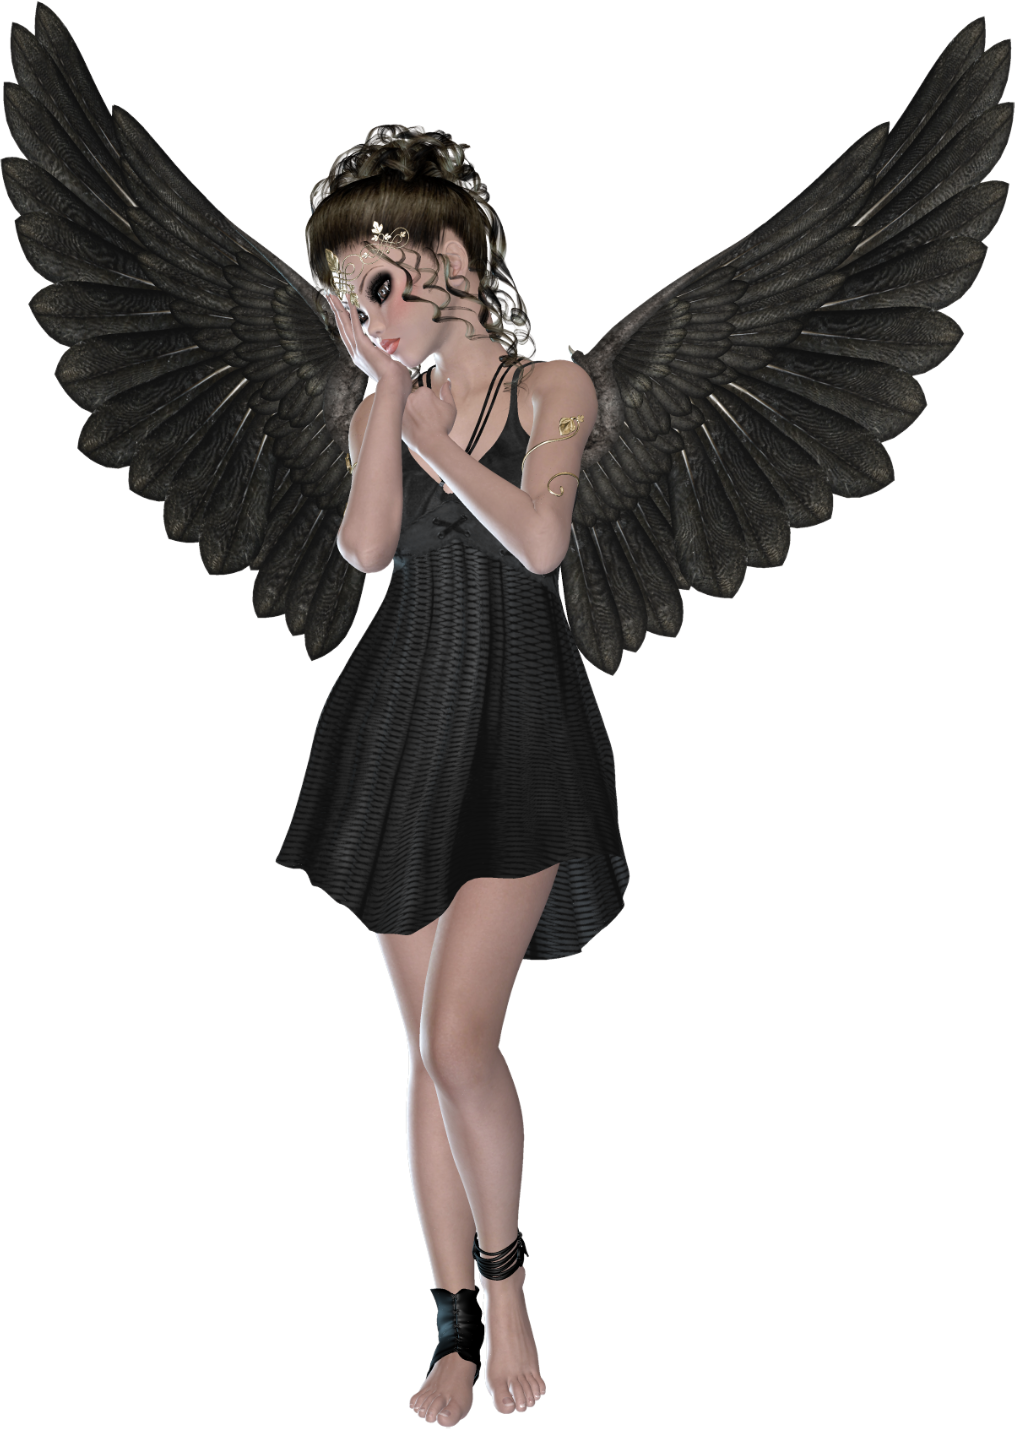 Black angel png. Beautiful d gallery yopriceville